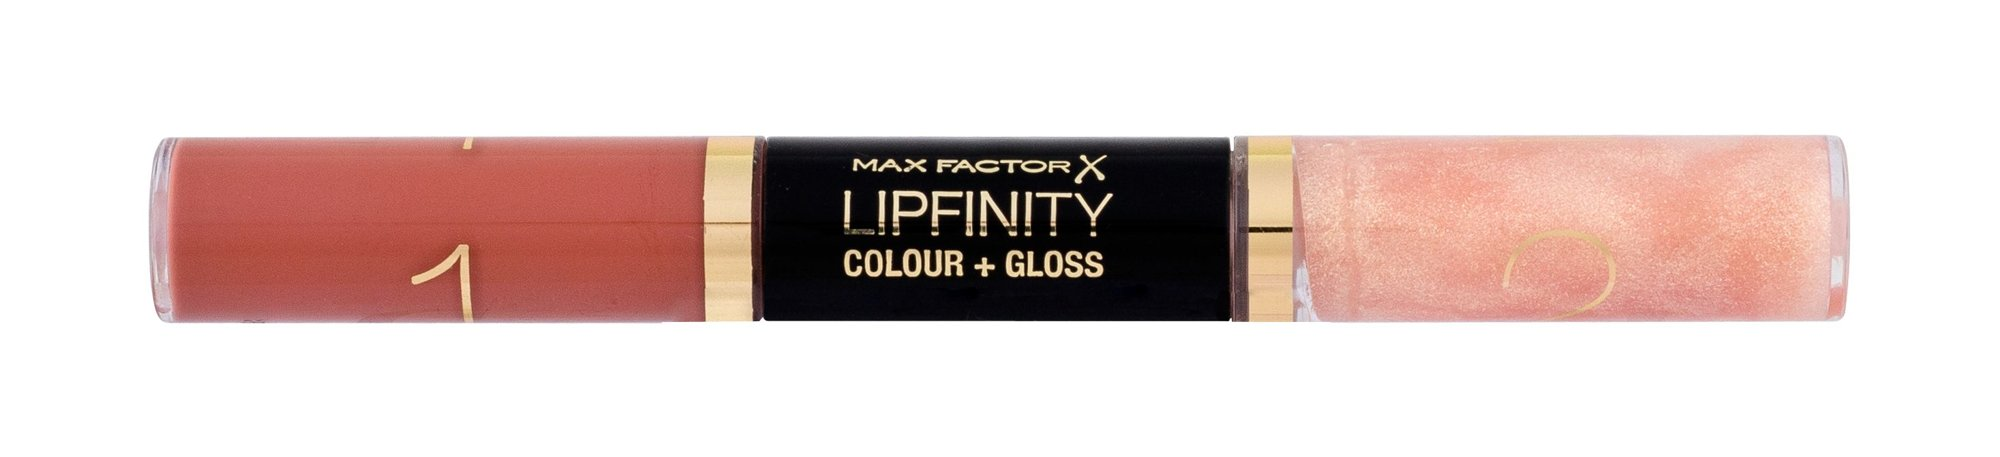 Max Factor Lipfinity Lipstick 2x3ml 620 Eternal Nude